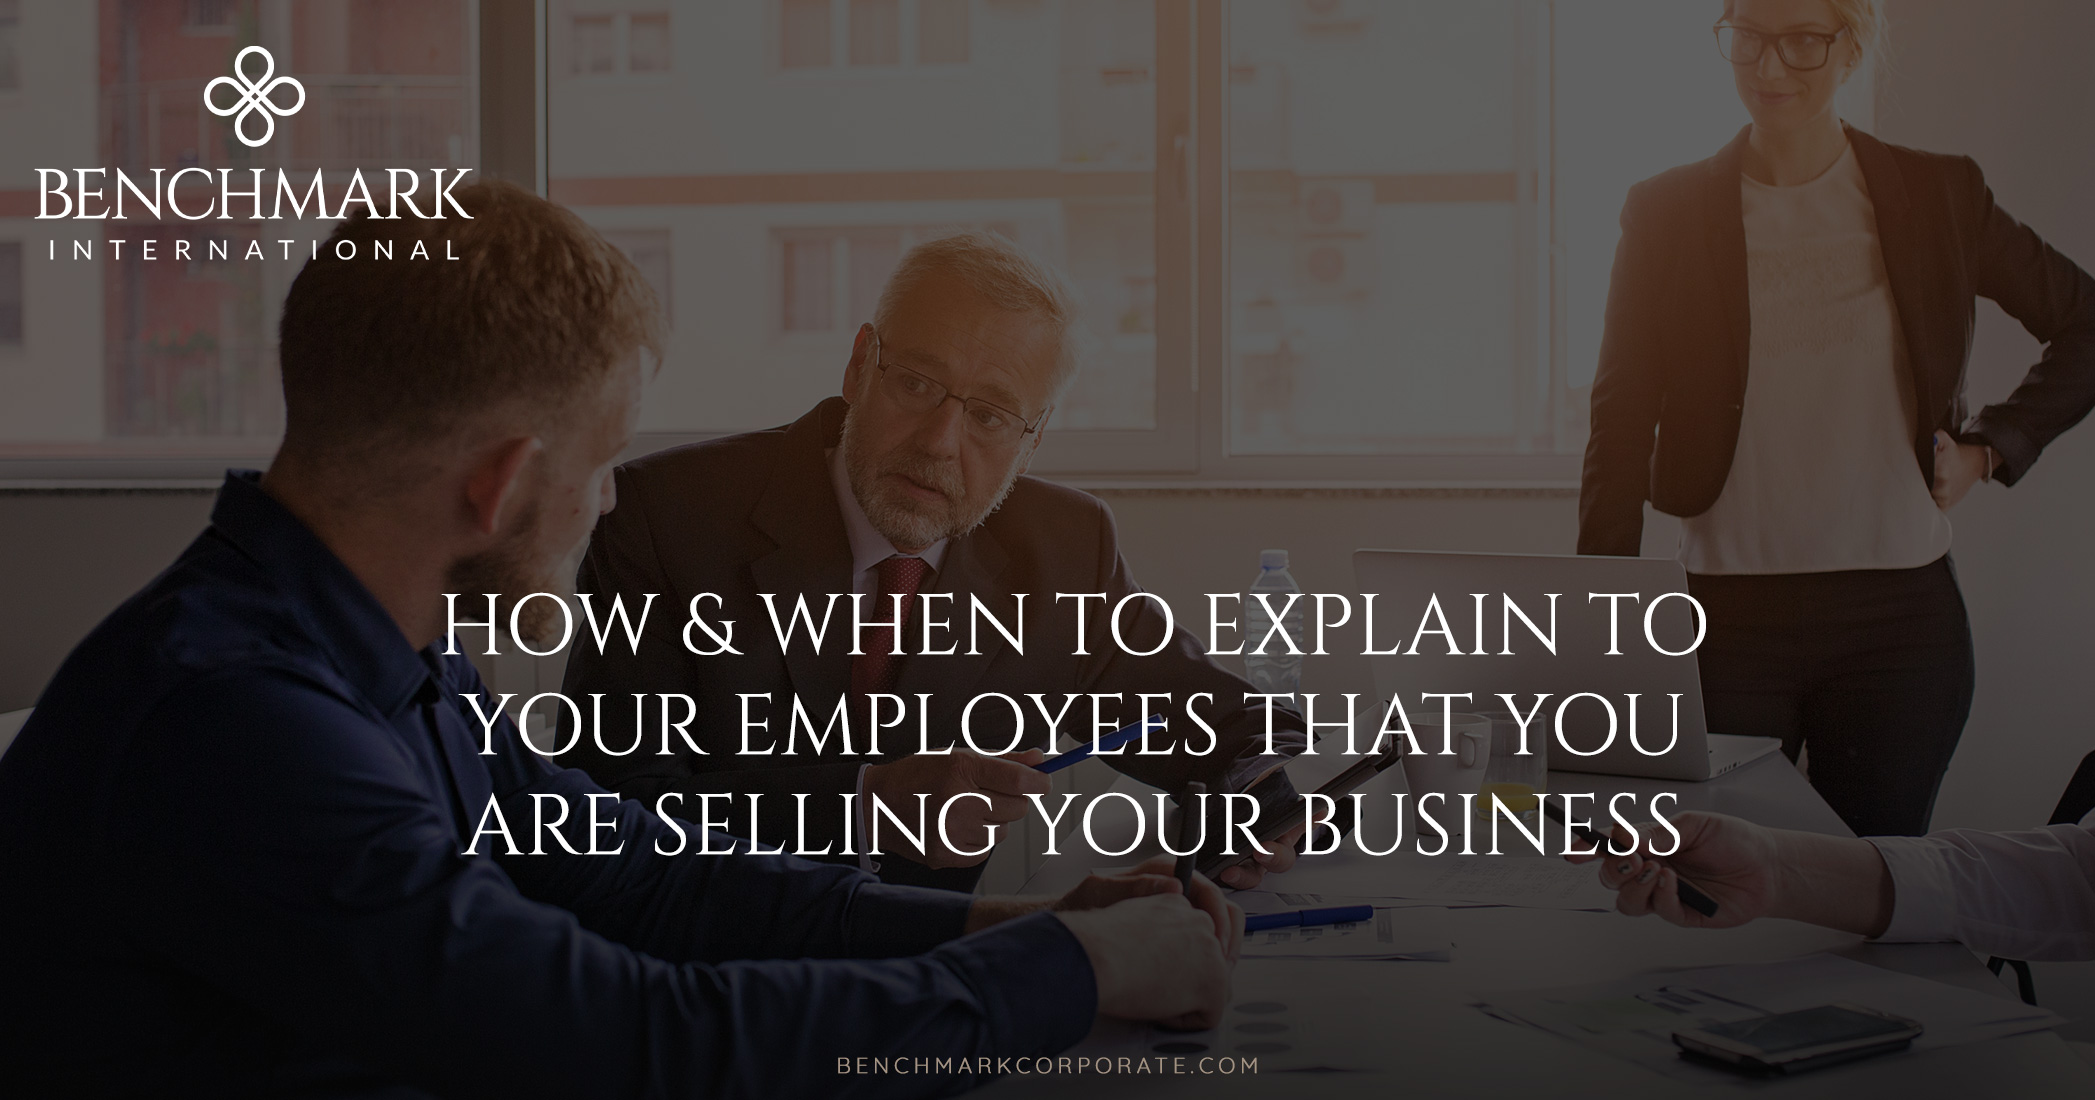 How & When To Explain To Your Employees That You Are Selling Your Business